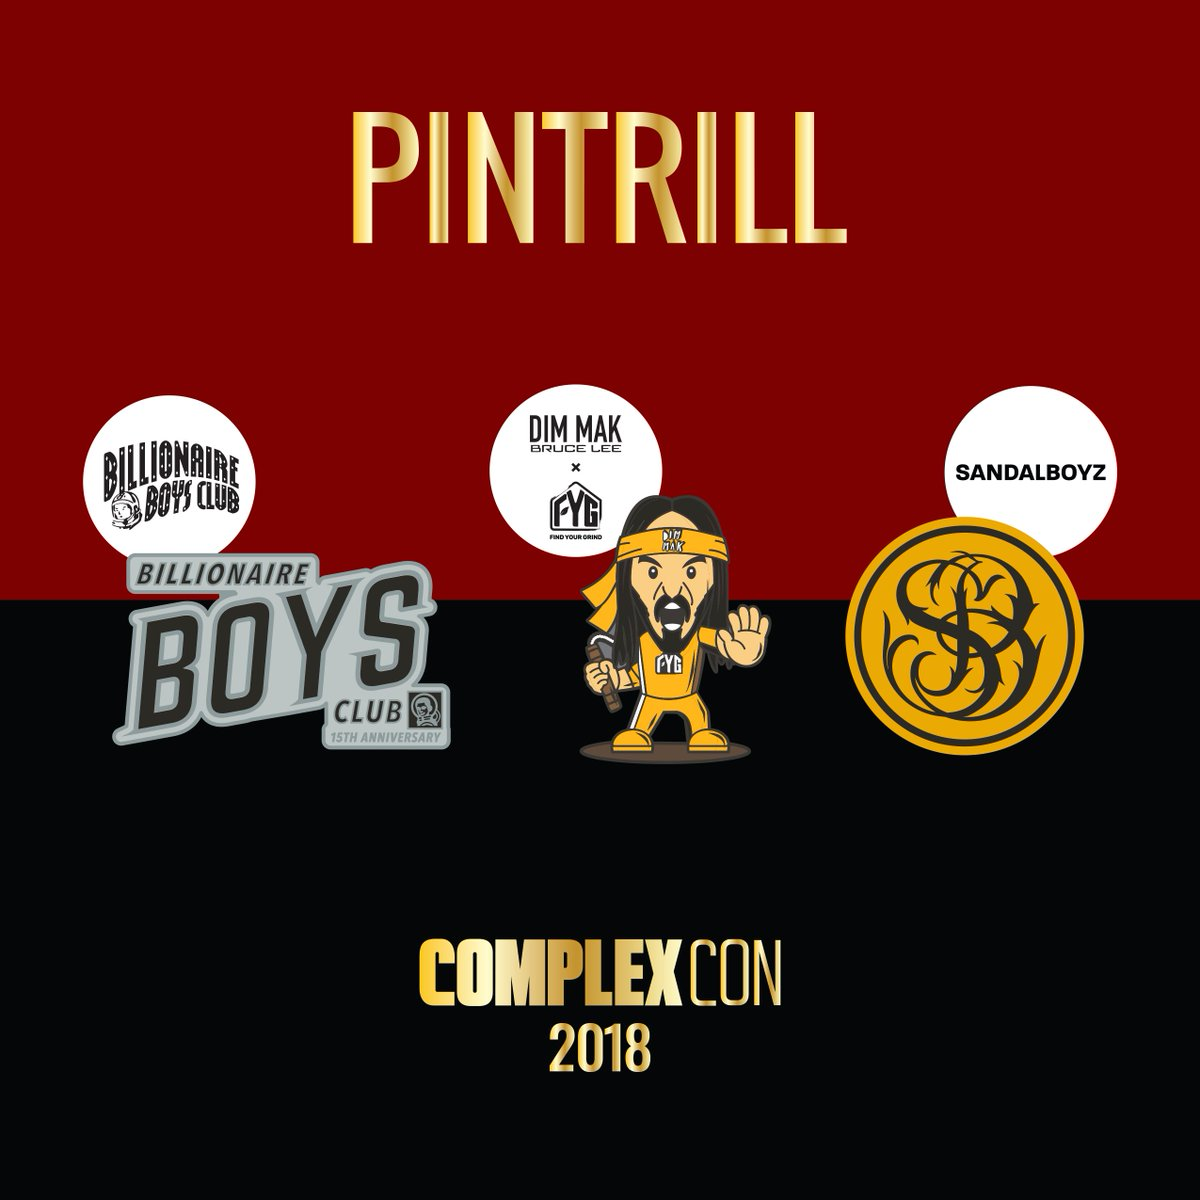 @bbcicecream @dimmak @sandalboyz 🔥🔥🔥 Tag someone going to @ComplexCon! Make sure you grab a free map at the #PINTRILL booth (F2) or info desks! See you this weekend! #GoodTrillHunting